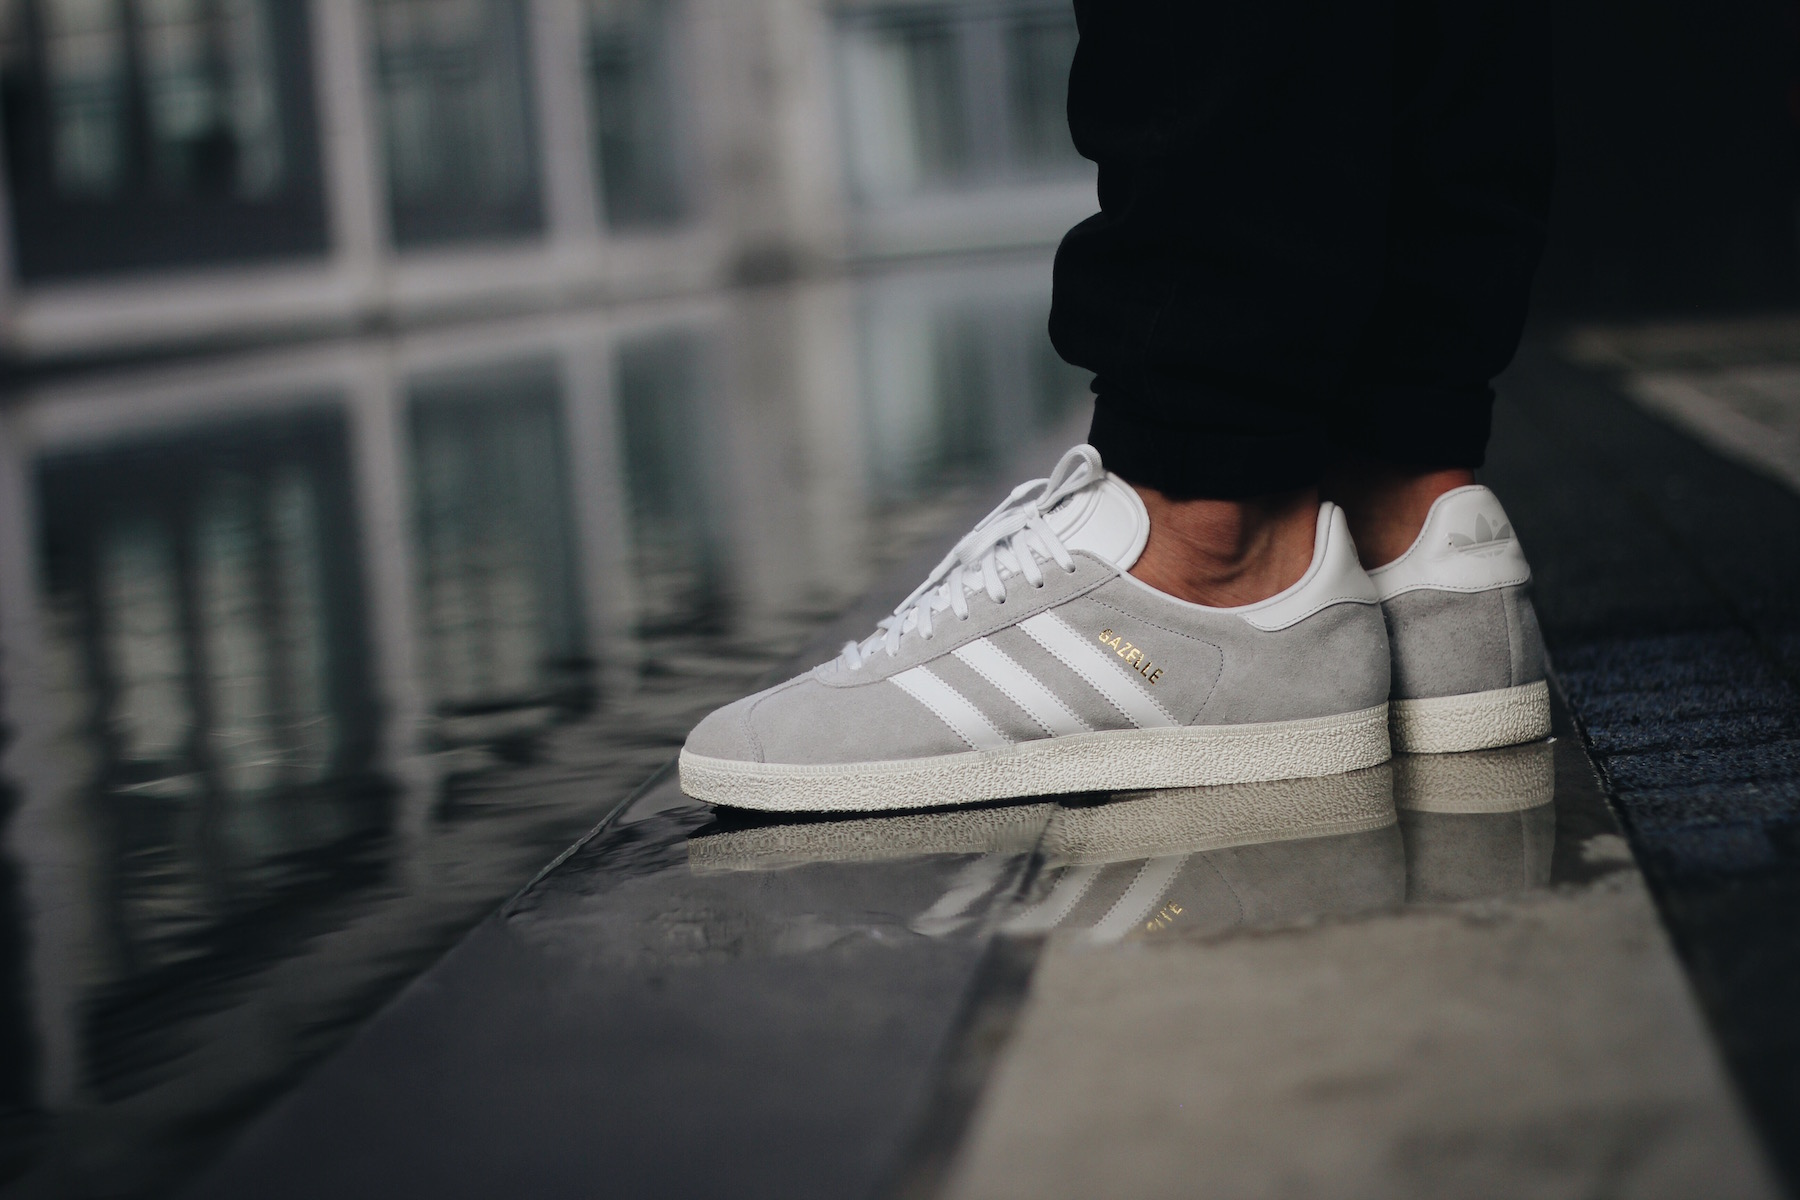 free shipping 9cfe5 b7cc8 adidas-gazelle-leather-clear-onix-white-gold-metallic-s76221-on-feet-1